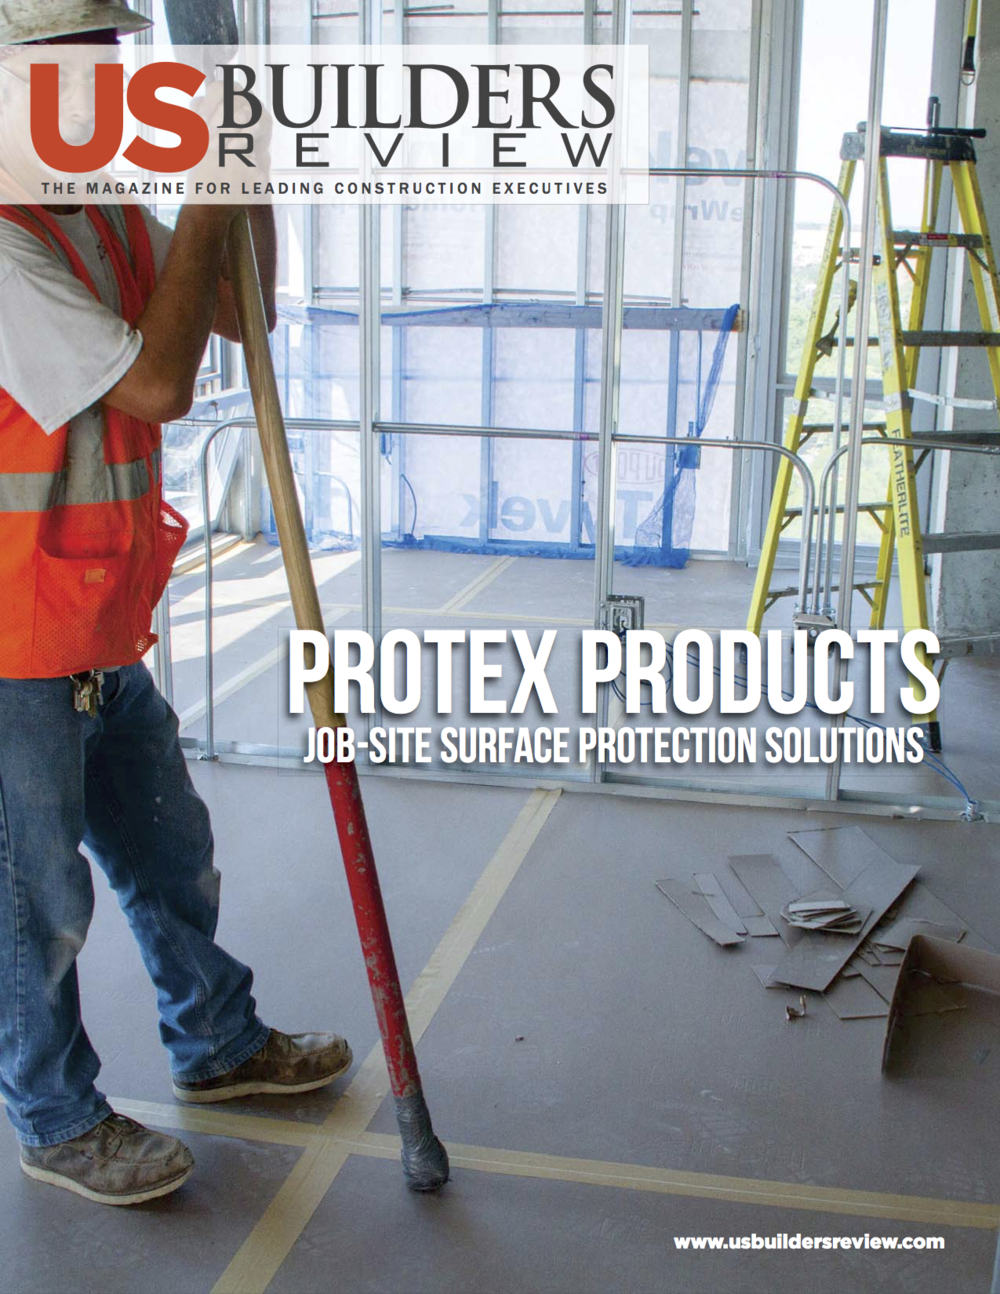 PROTEX - US Builders Review Article.png